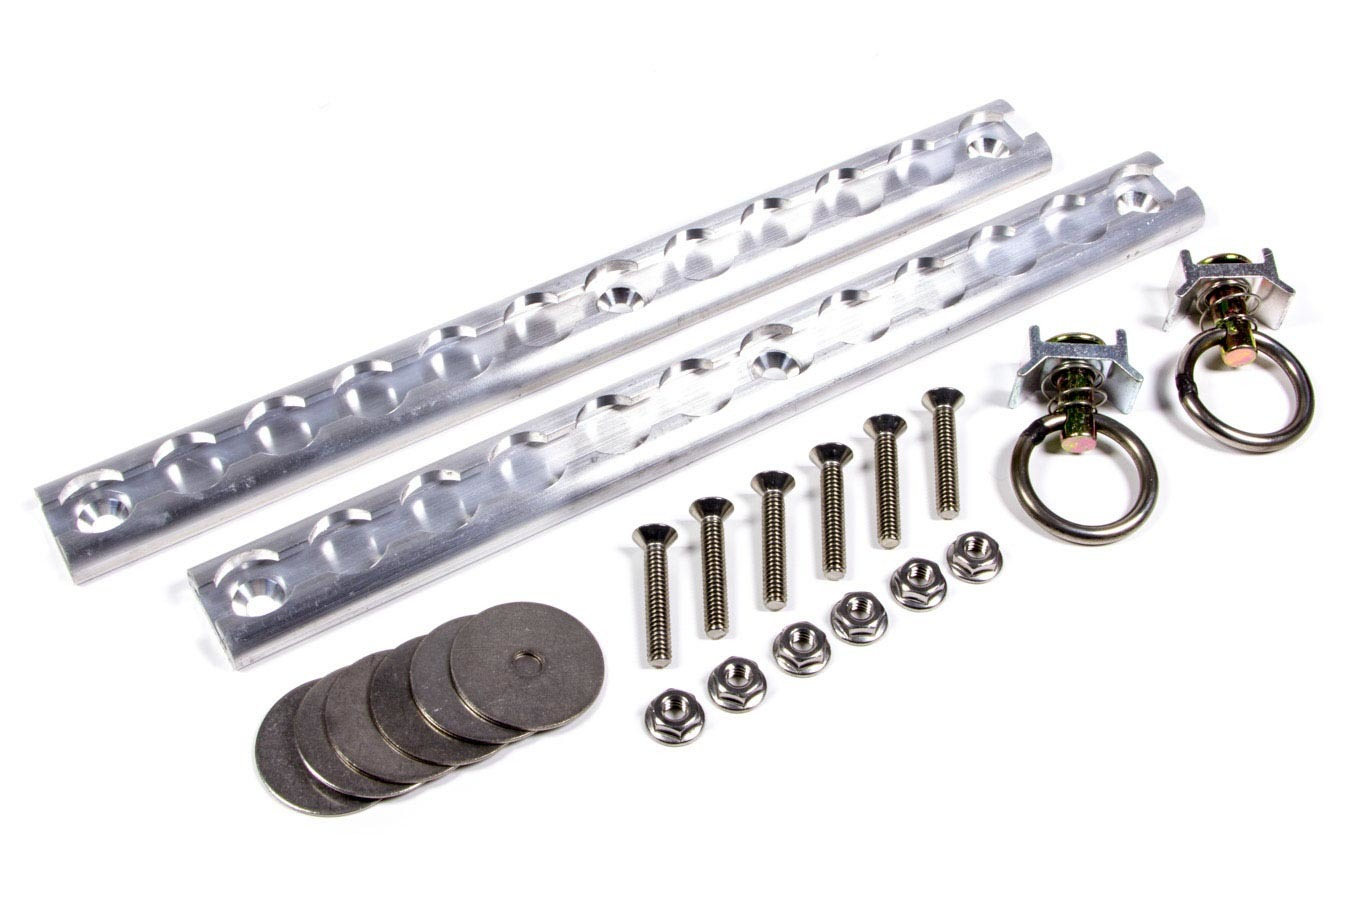 Macs Custom Tie Downs 522148 Tie Down Track Kit, VersaTie, Two 4 ft Long Tracks, Two Ring Tie Downs, Hardware Included, Aluminum / Steel, Natural / Cadmium, Kit